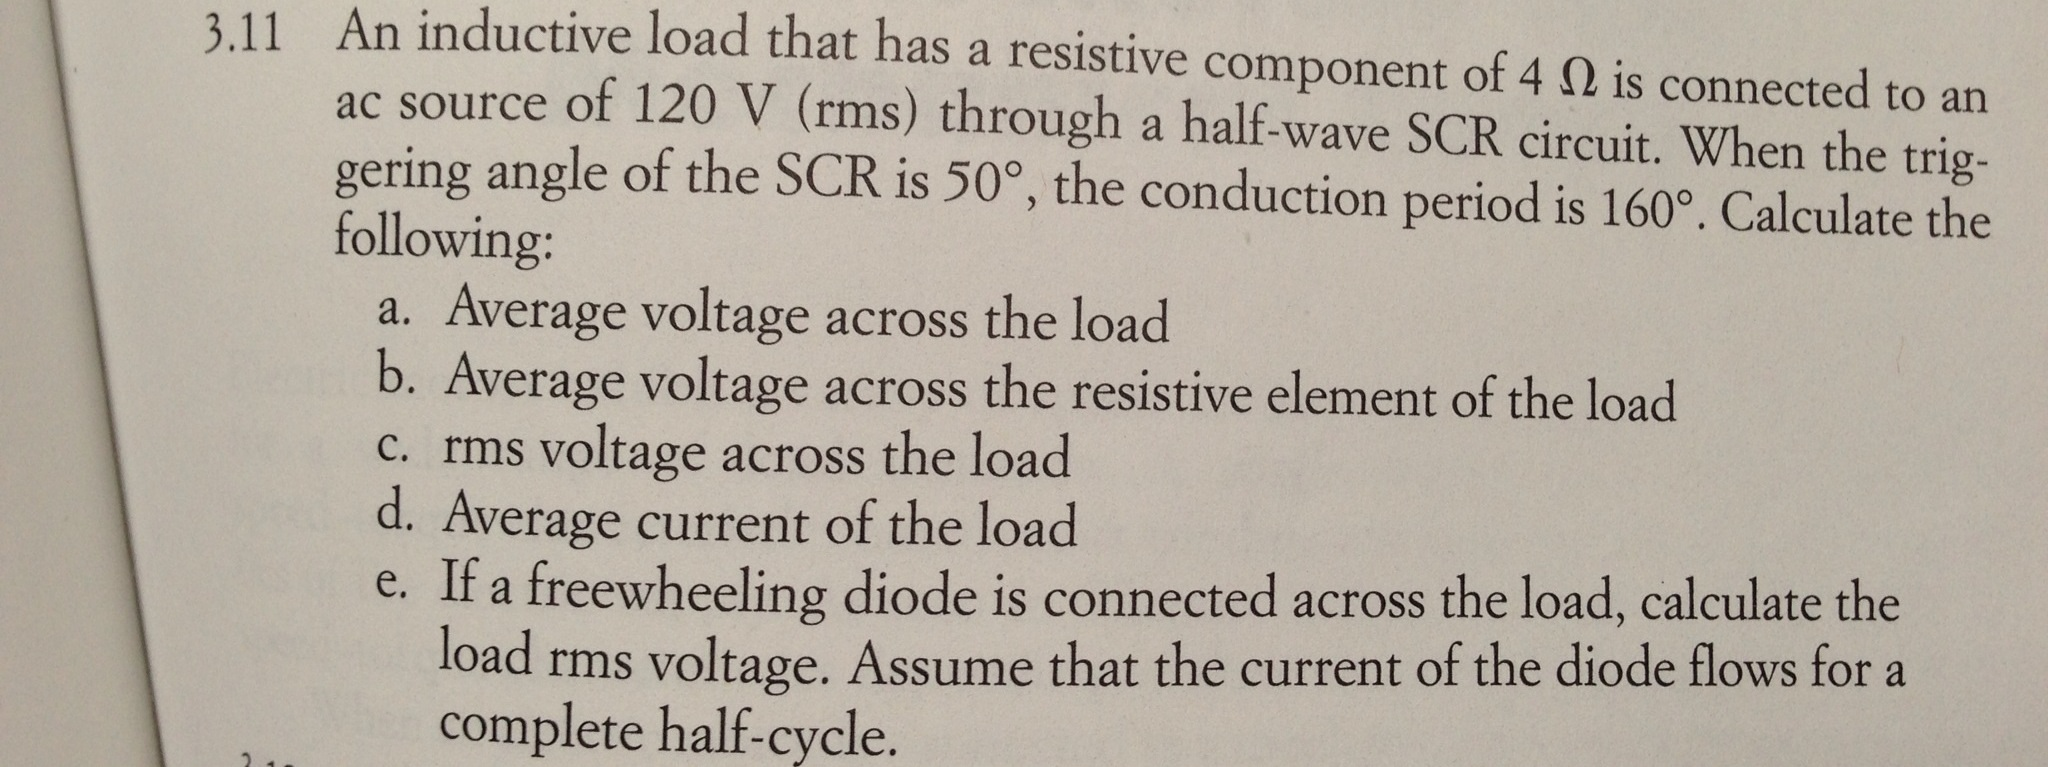 An inductive load that has a resistive component o